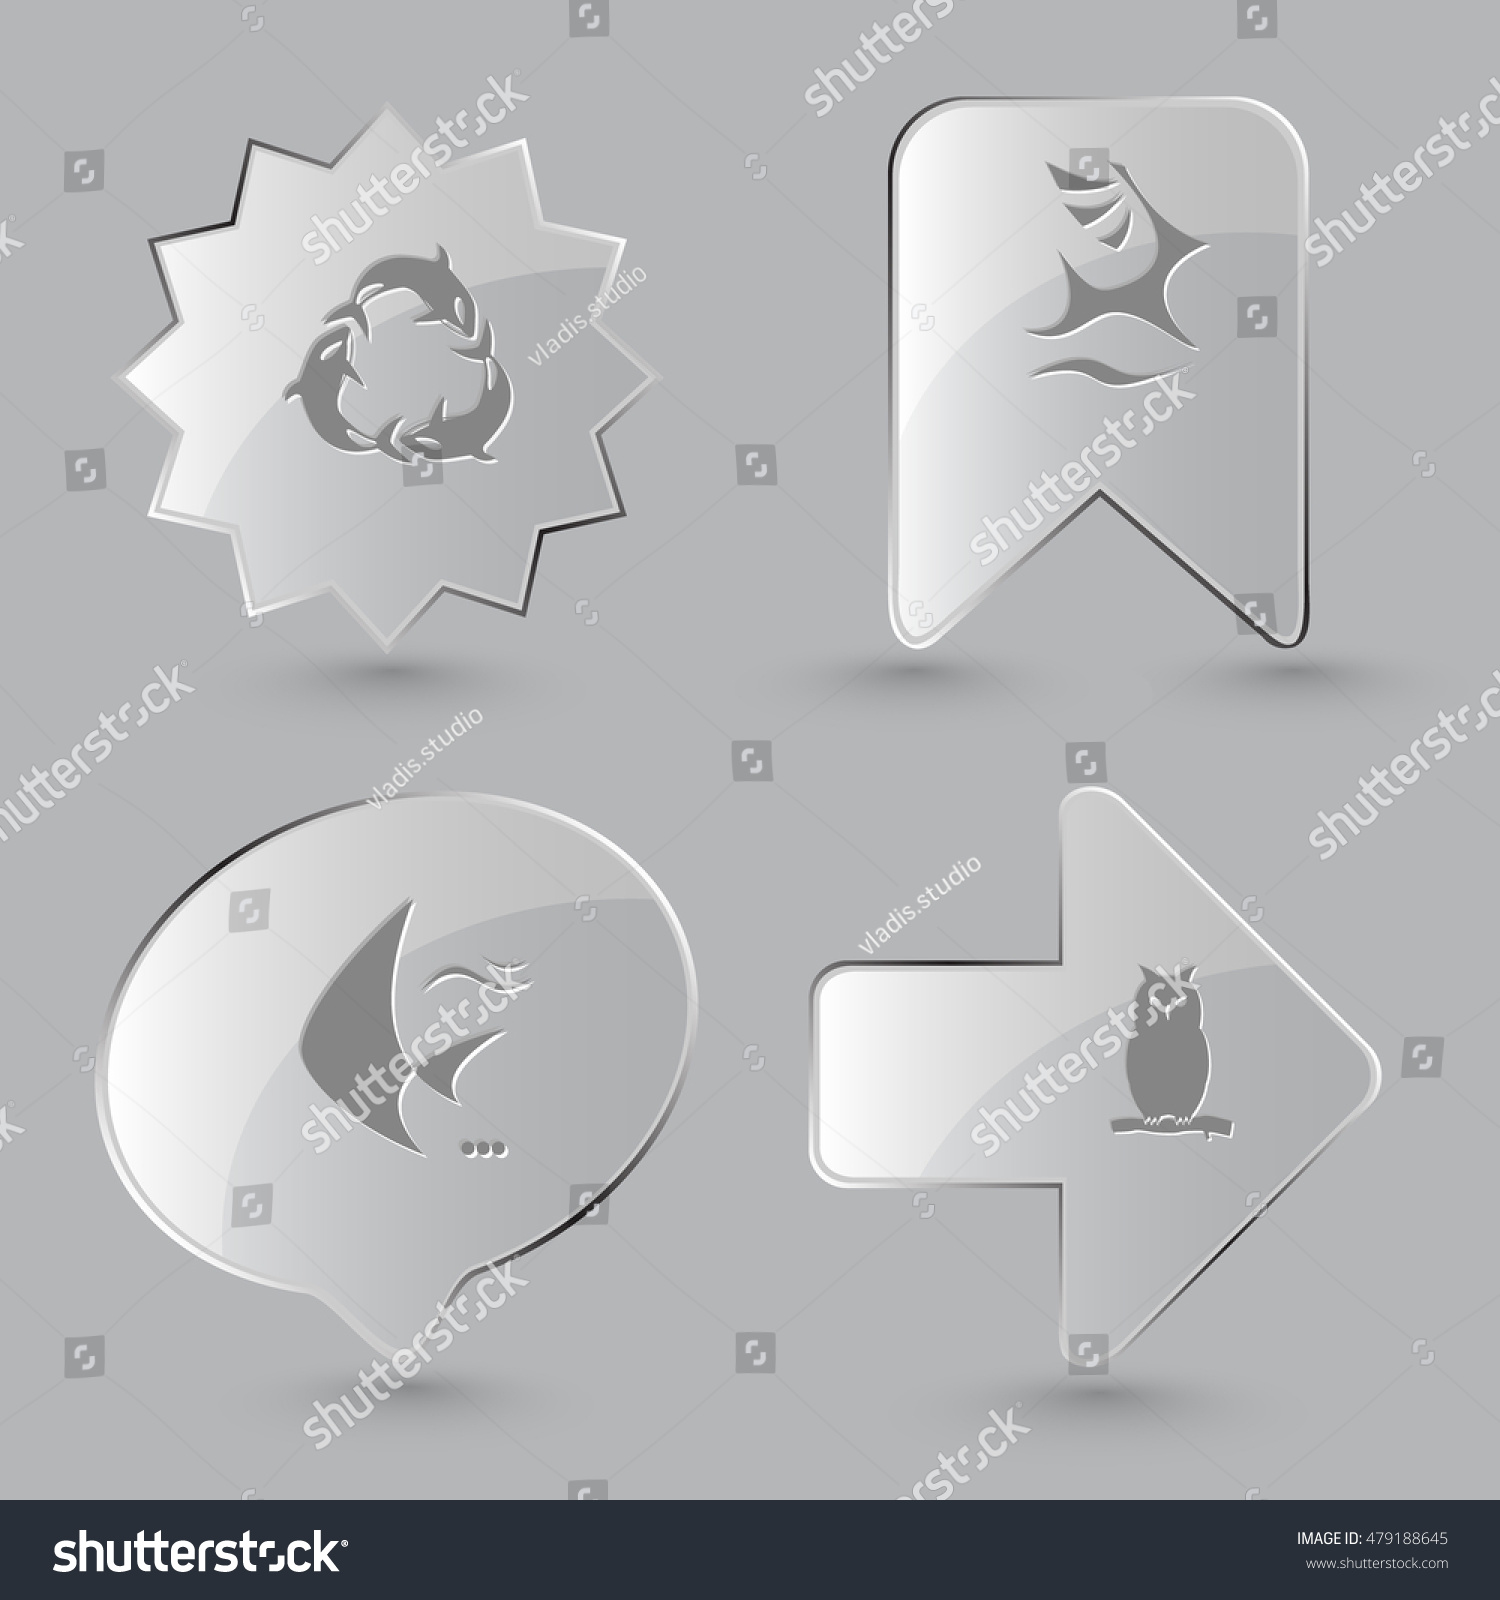 4 images killer whale recycling symbol stock vector 479188645 4 images killer whale as recycling symbol deer fish owl animal biocorpaavc Choice Image